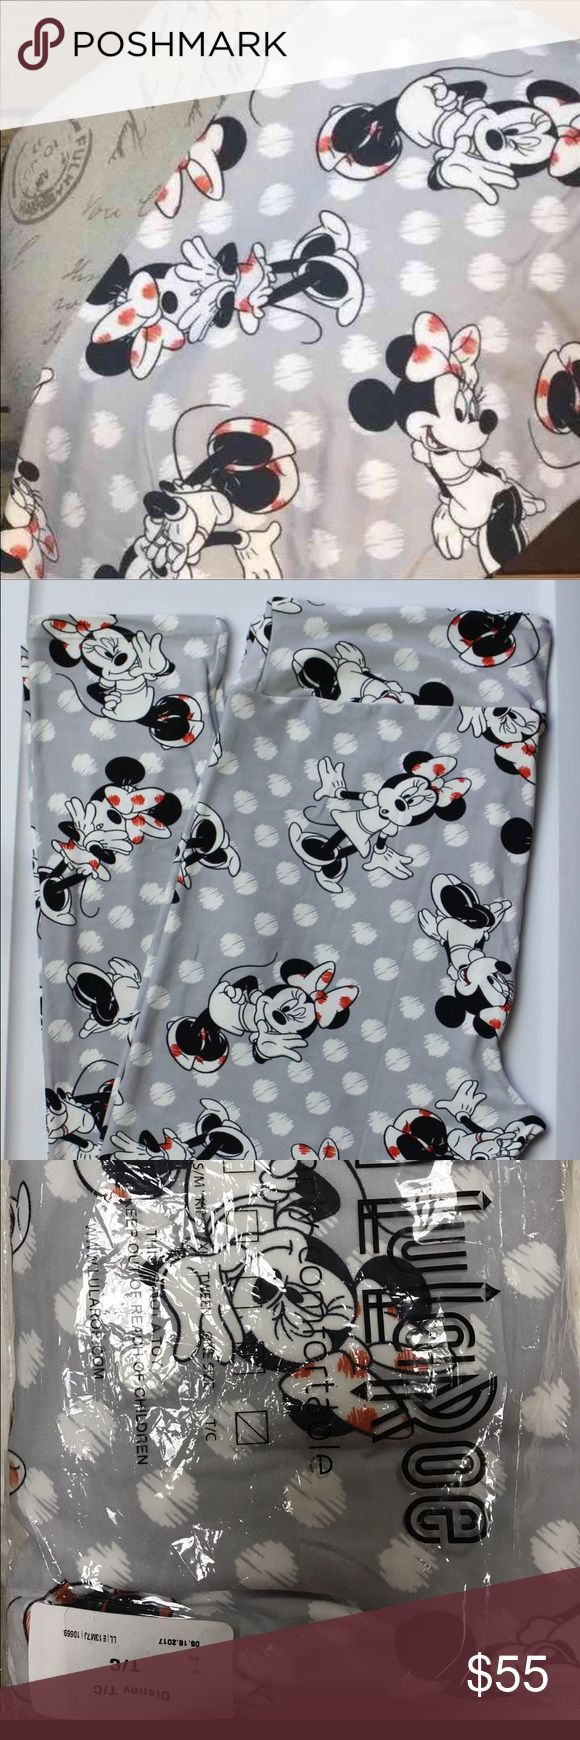 """LuLaRoe Disney Collection Minnie Mouse TC Brand new LuLaRoe Disney Collection Limited Print Minnie Mouse❣️ They are only releasing a limited amount of each character for a limited time. If you love Disney, you'll love these. They are so adorable & made with the buttery soft legging material LuLaRoe is known for! Size Tc (Tall & Curvy) fits sizes 12-22 listed as a """"14"""" to be in the plus size category. They do fit sizes 12-22, per Lularoe. Please keep in mind the Disney Collection is more…"""